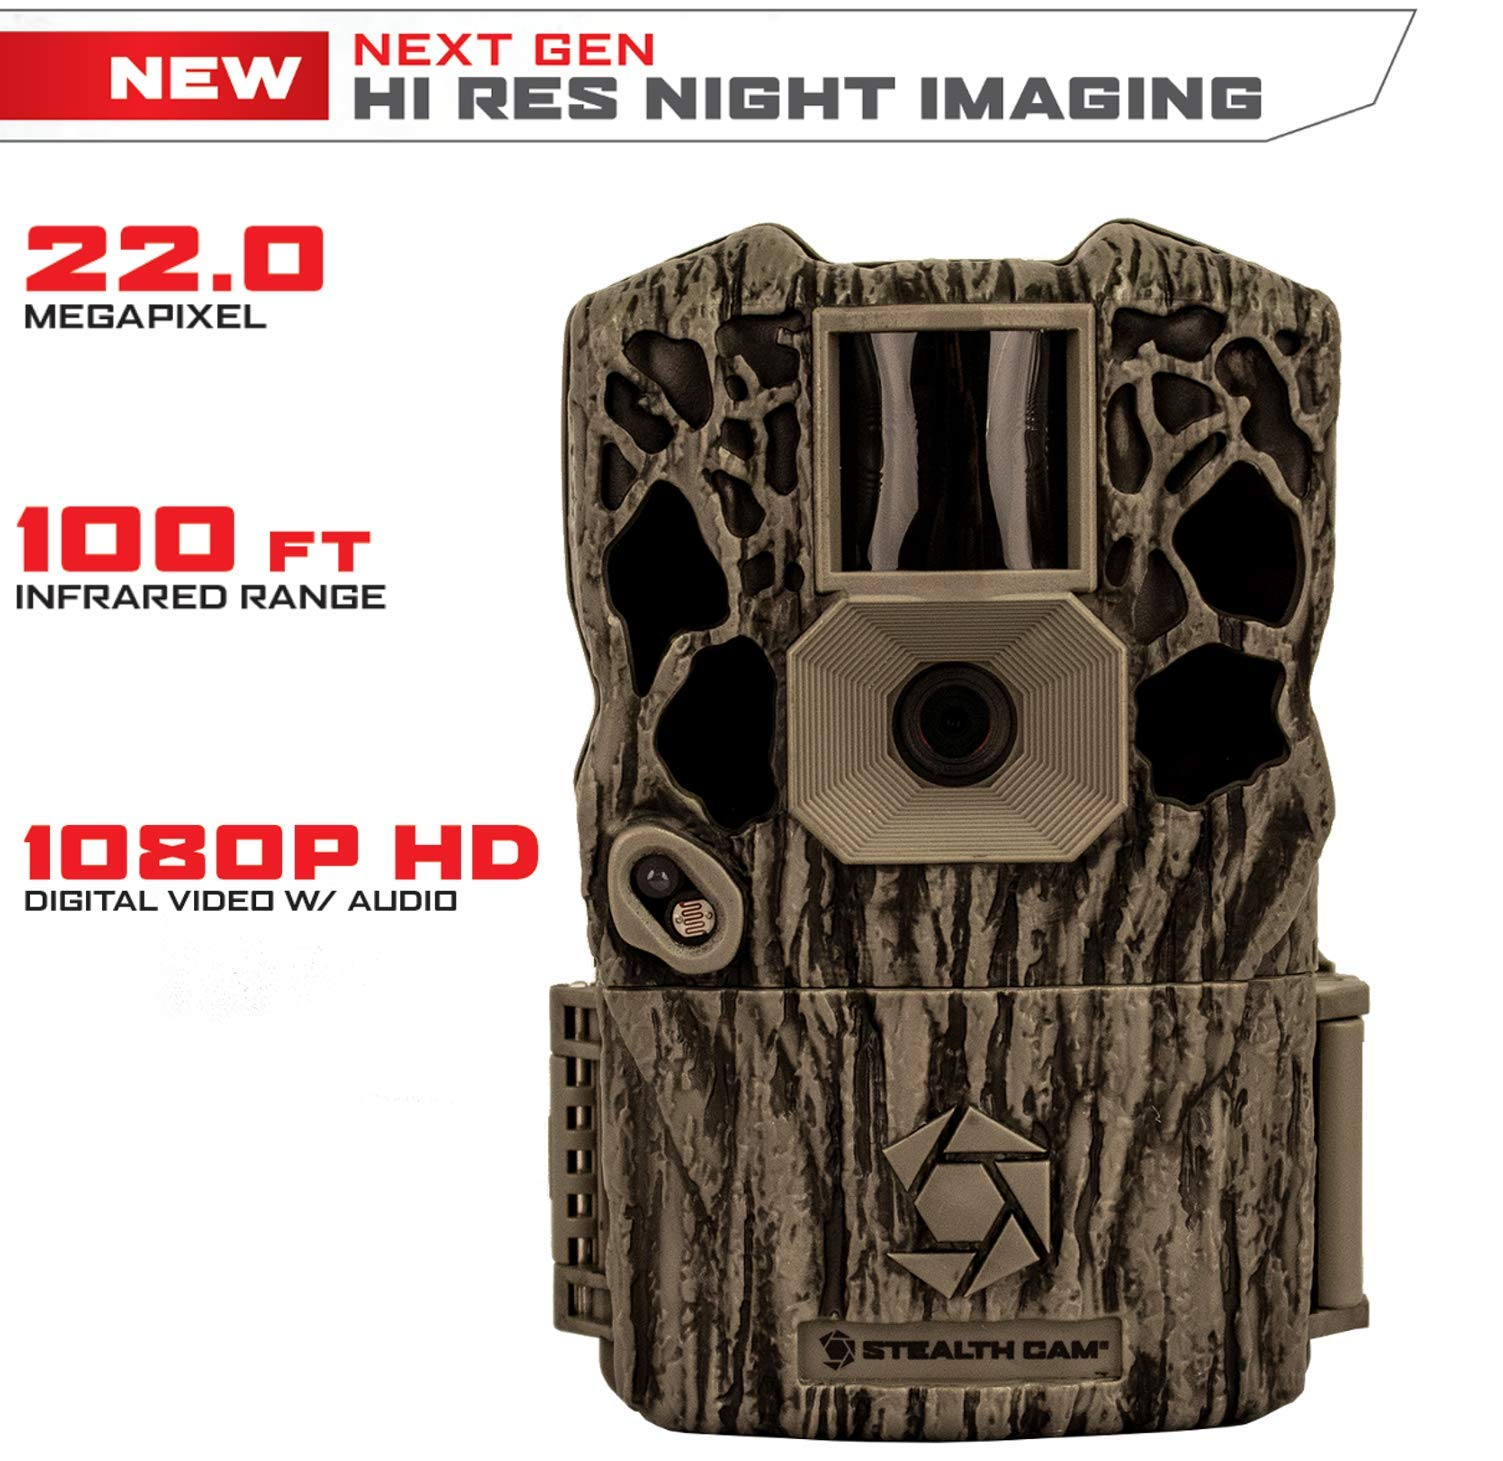 Stealth Cam XV4 Infrared 22MP Game Camera High Rez Night Imaging, Minimizes Grain, Smart Illumination Technology